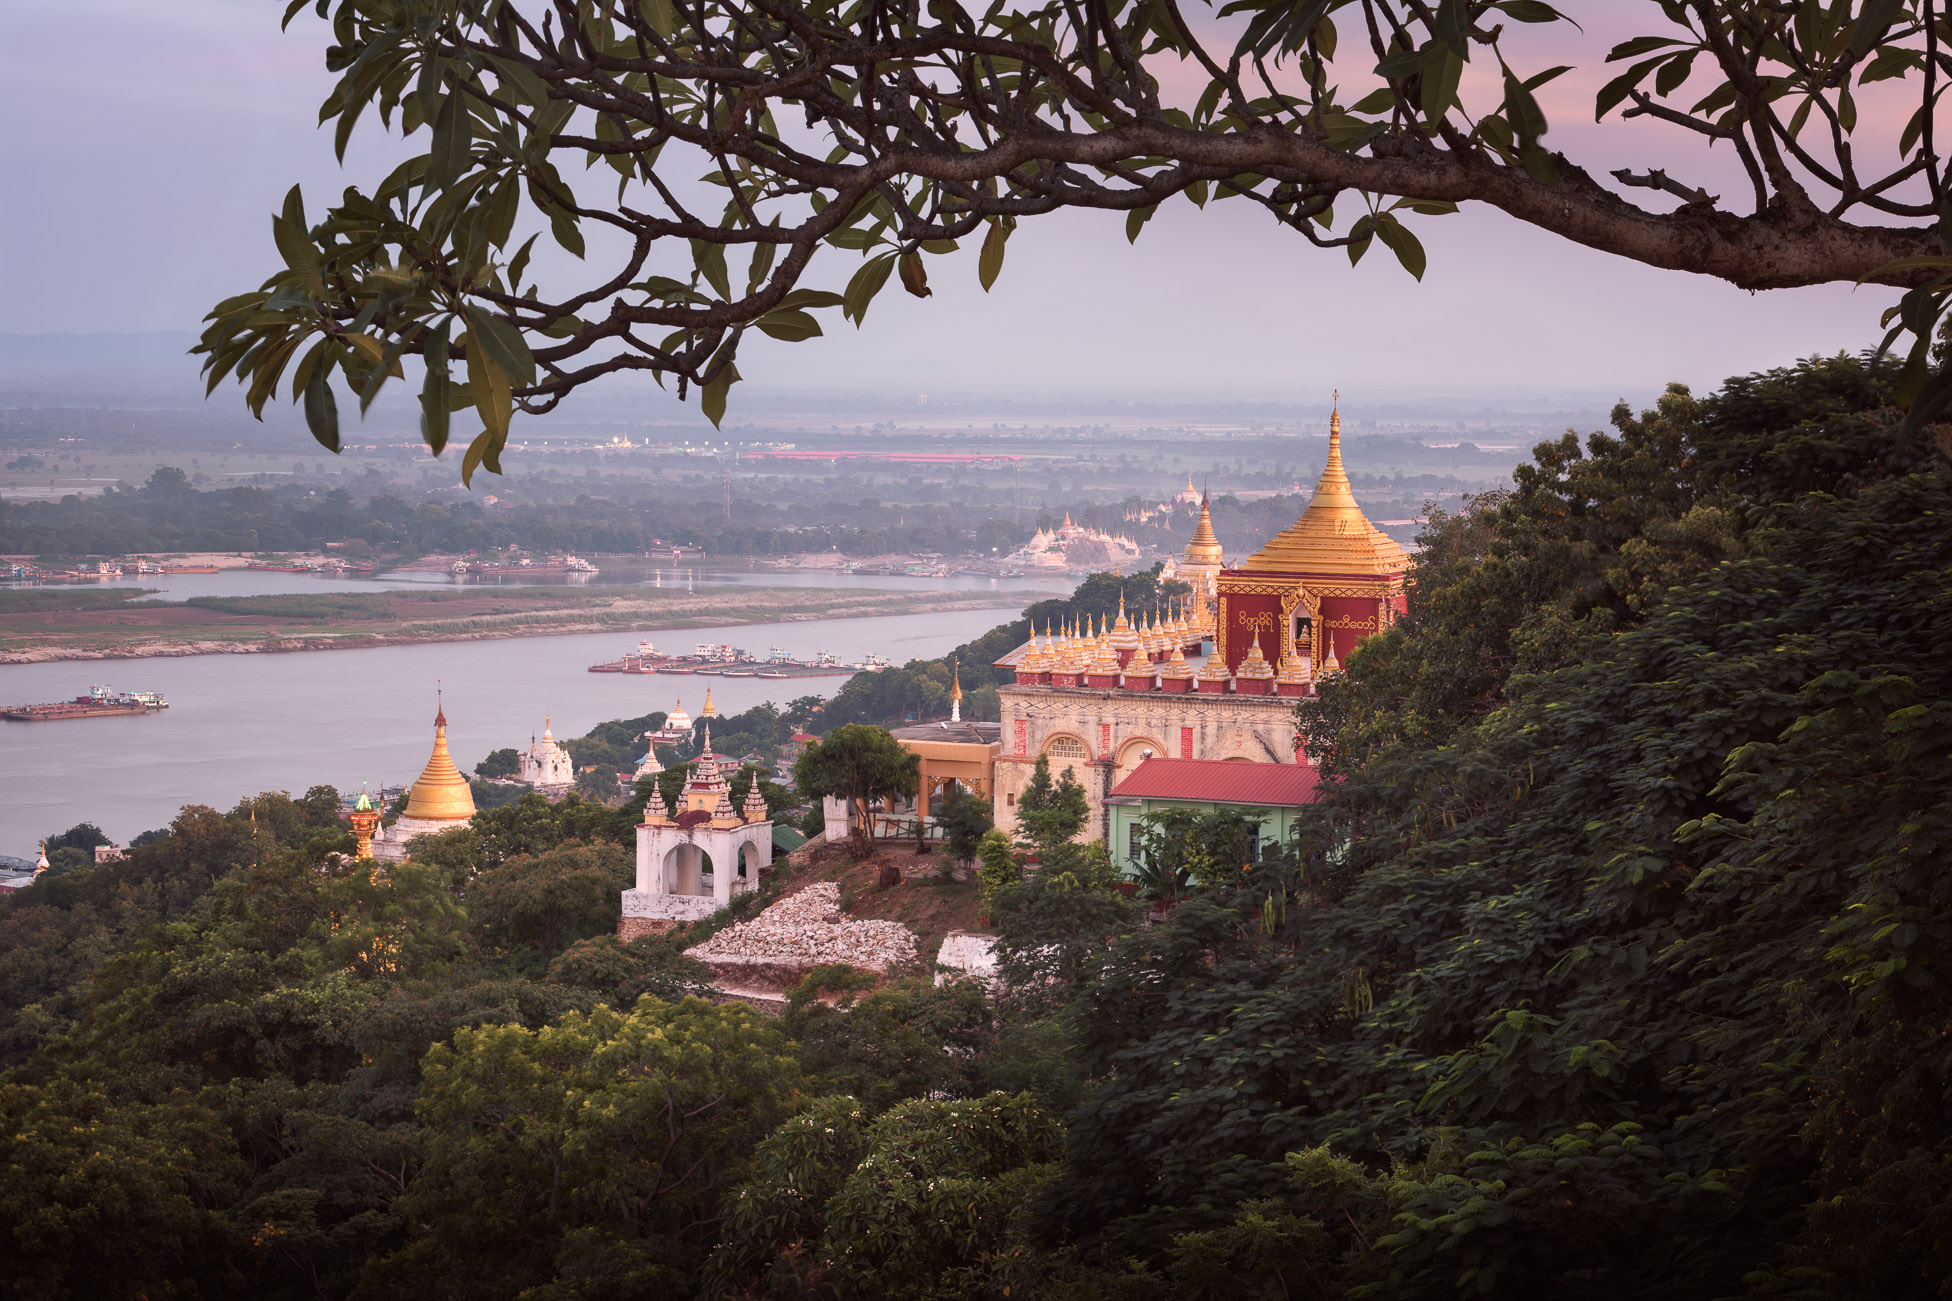 Sedi La Su Taung Pyae Pagoda and Irrawaddy River in the Evening, Sagaing Hill, Myanmar